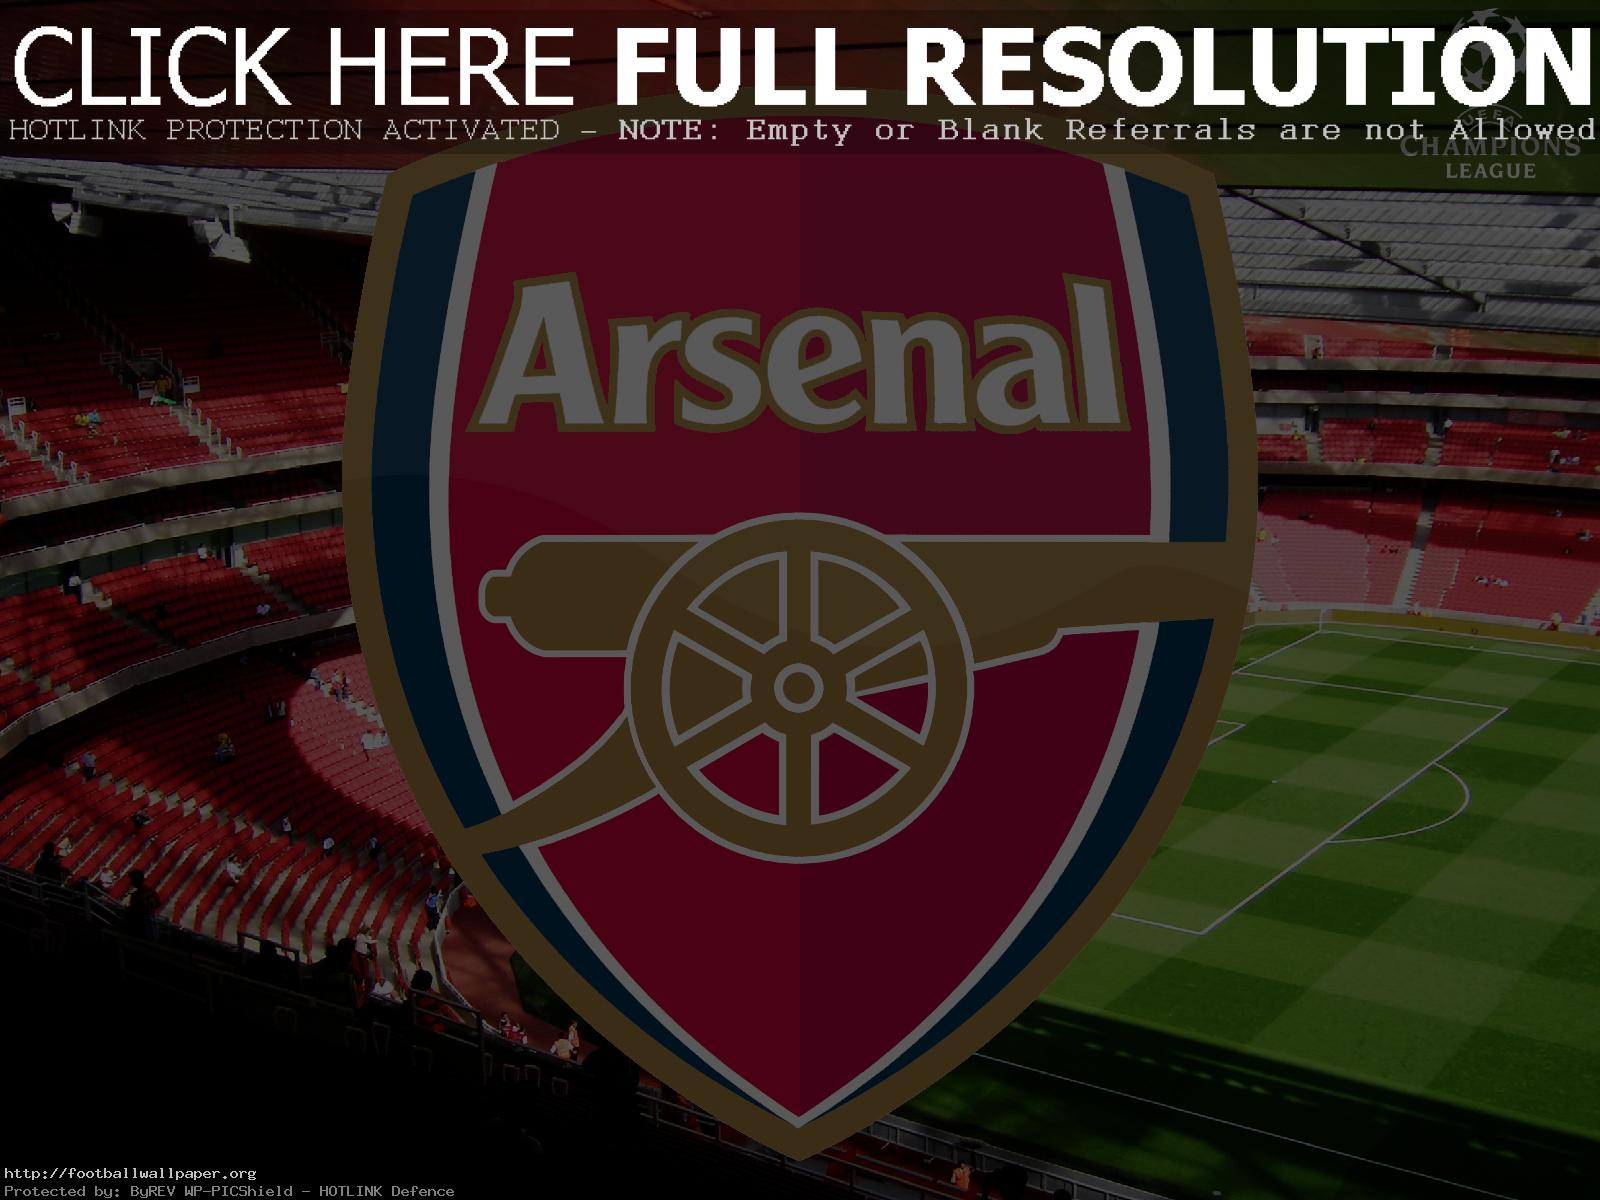 New Arsenal Fc Wallpaper | Football Wallpaper